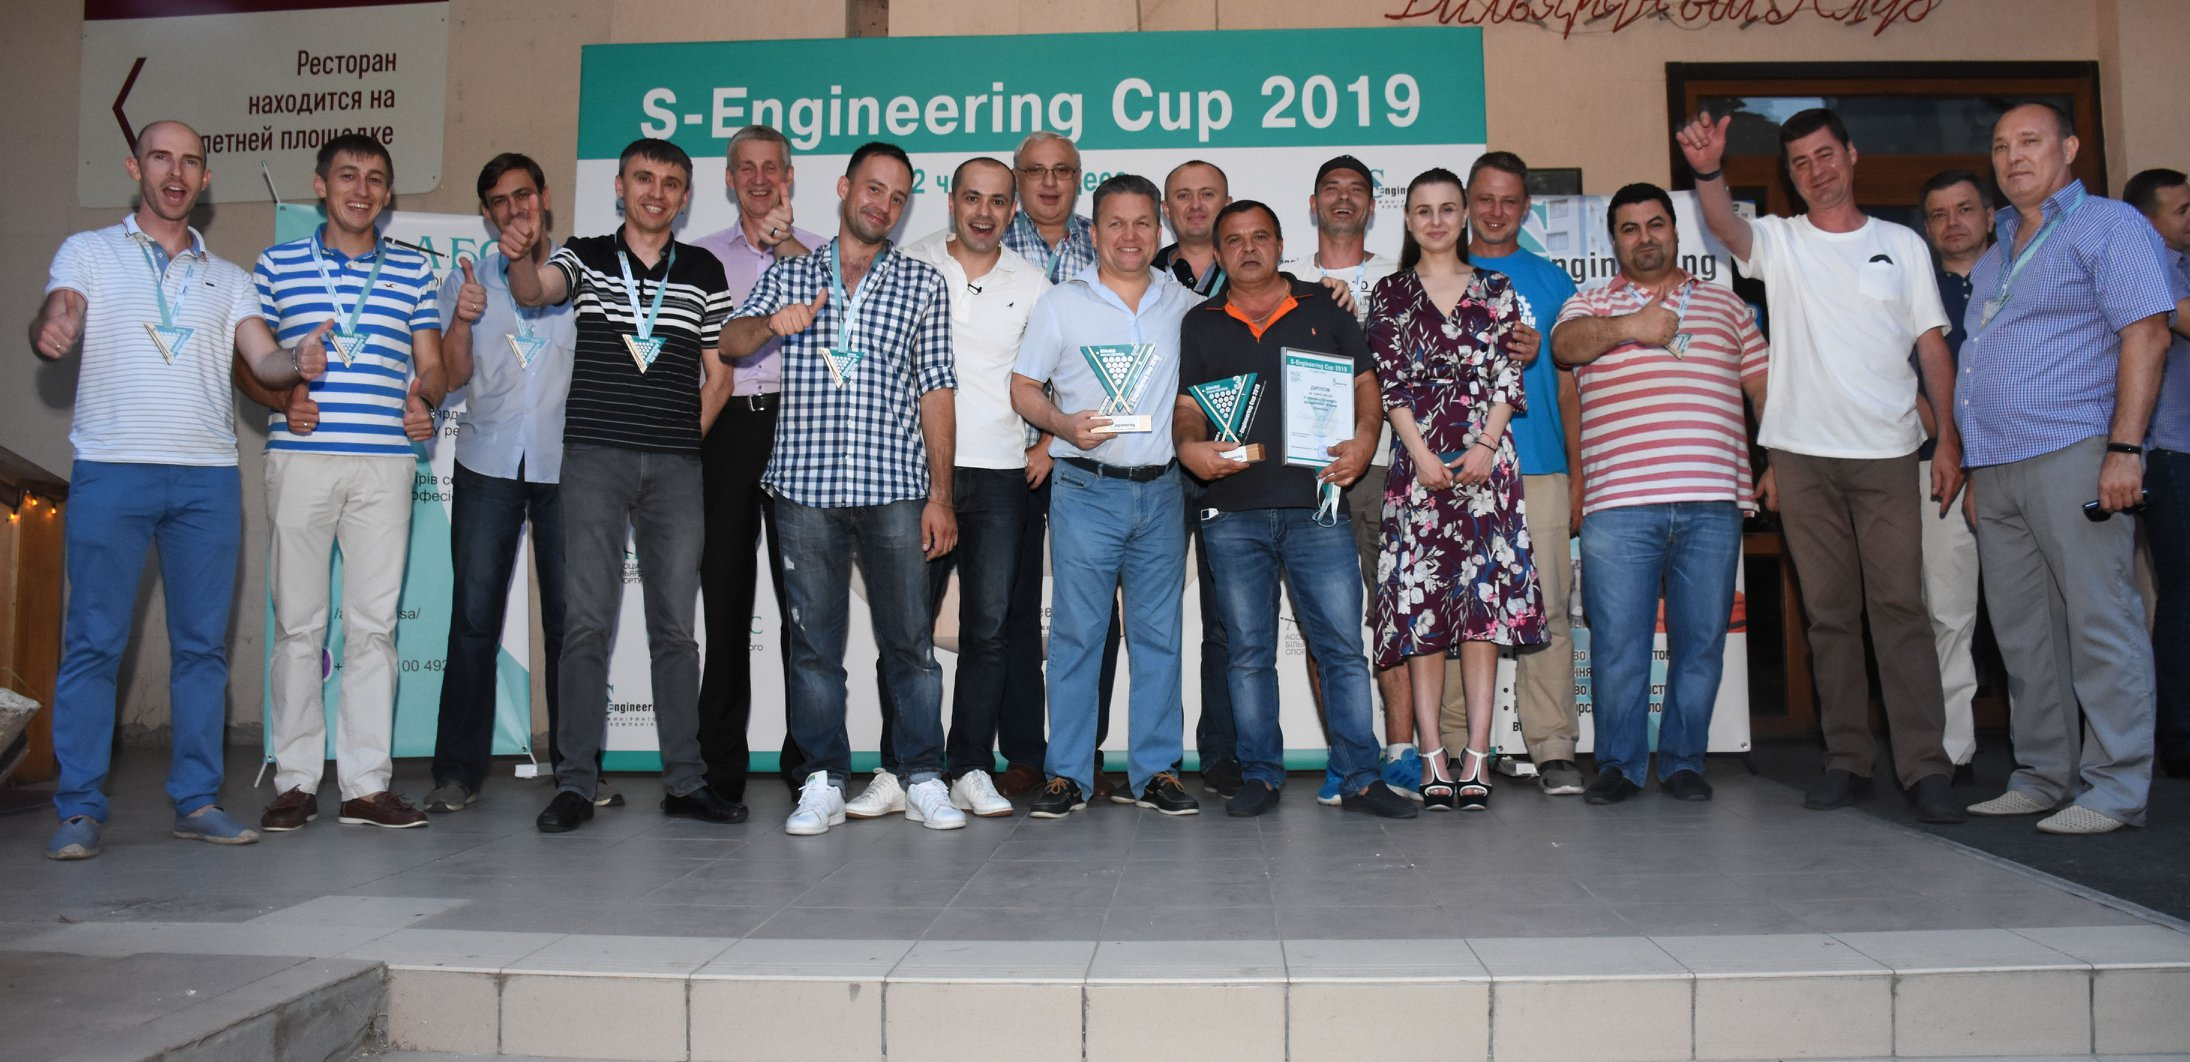 S-Engineering Cup 2019